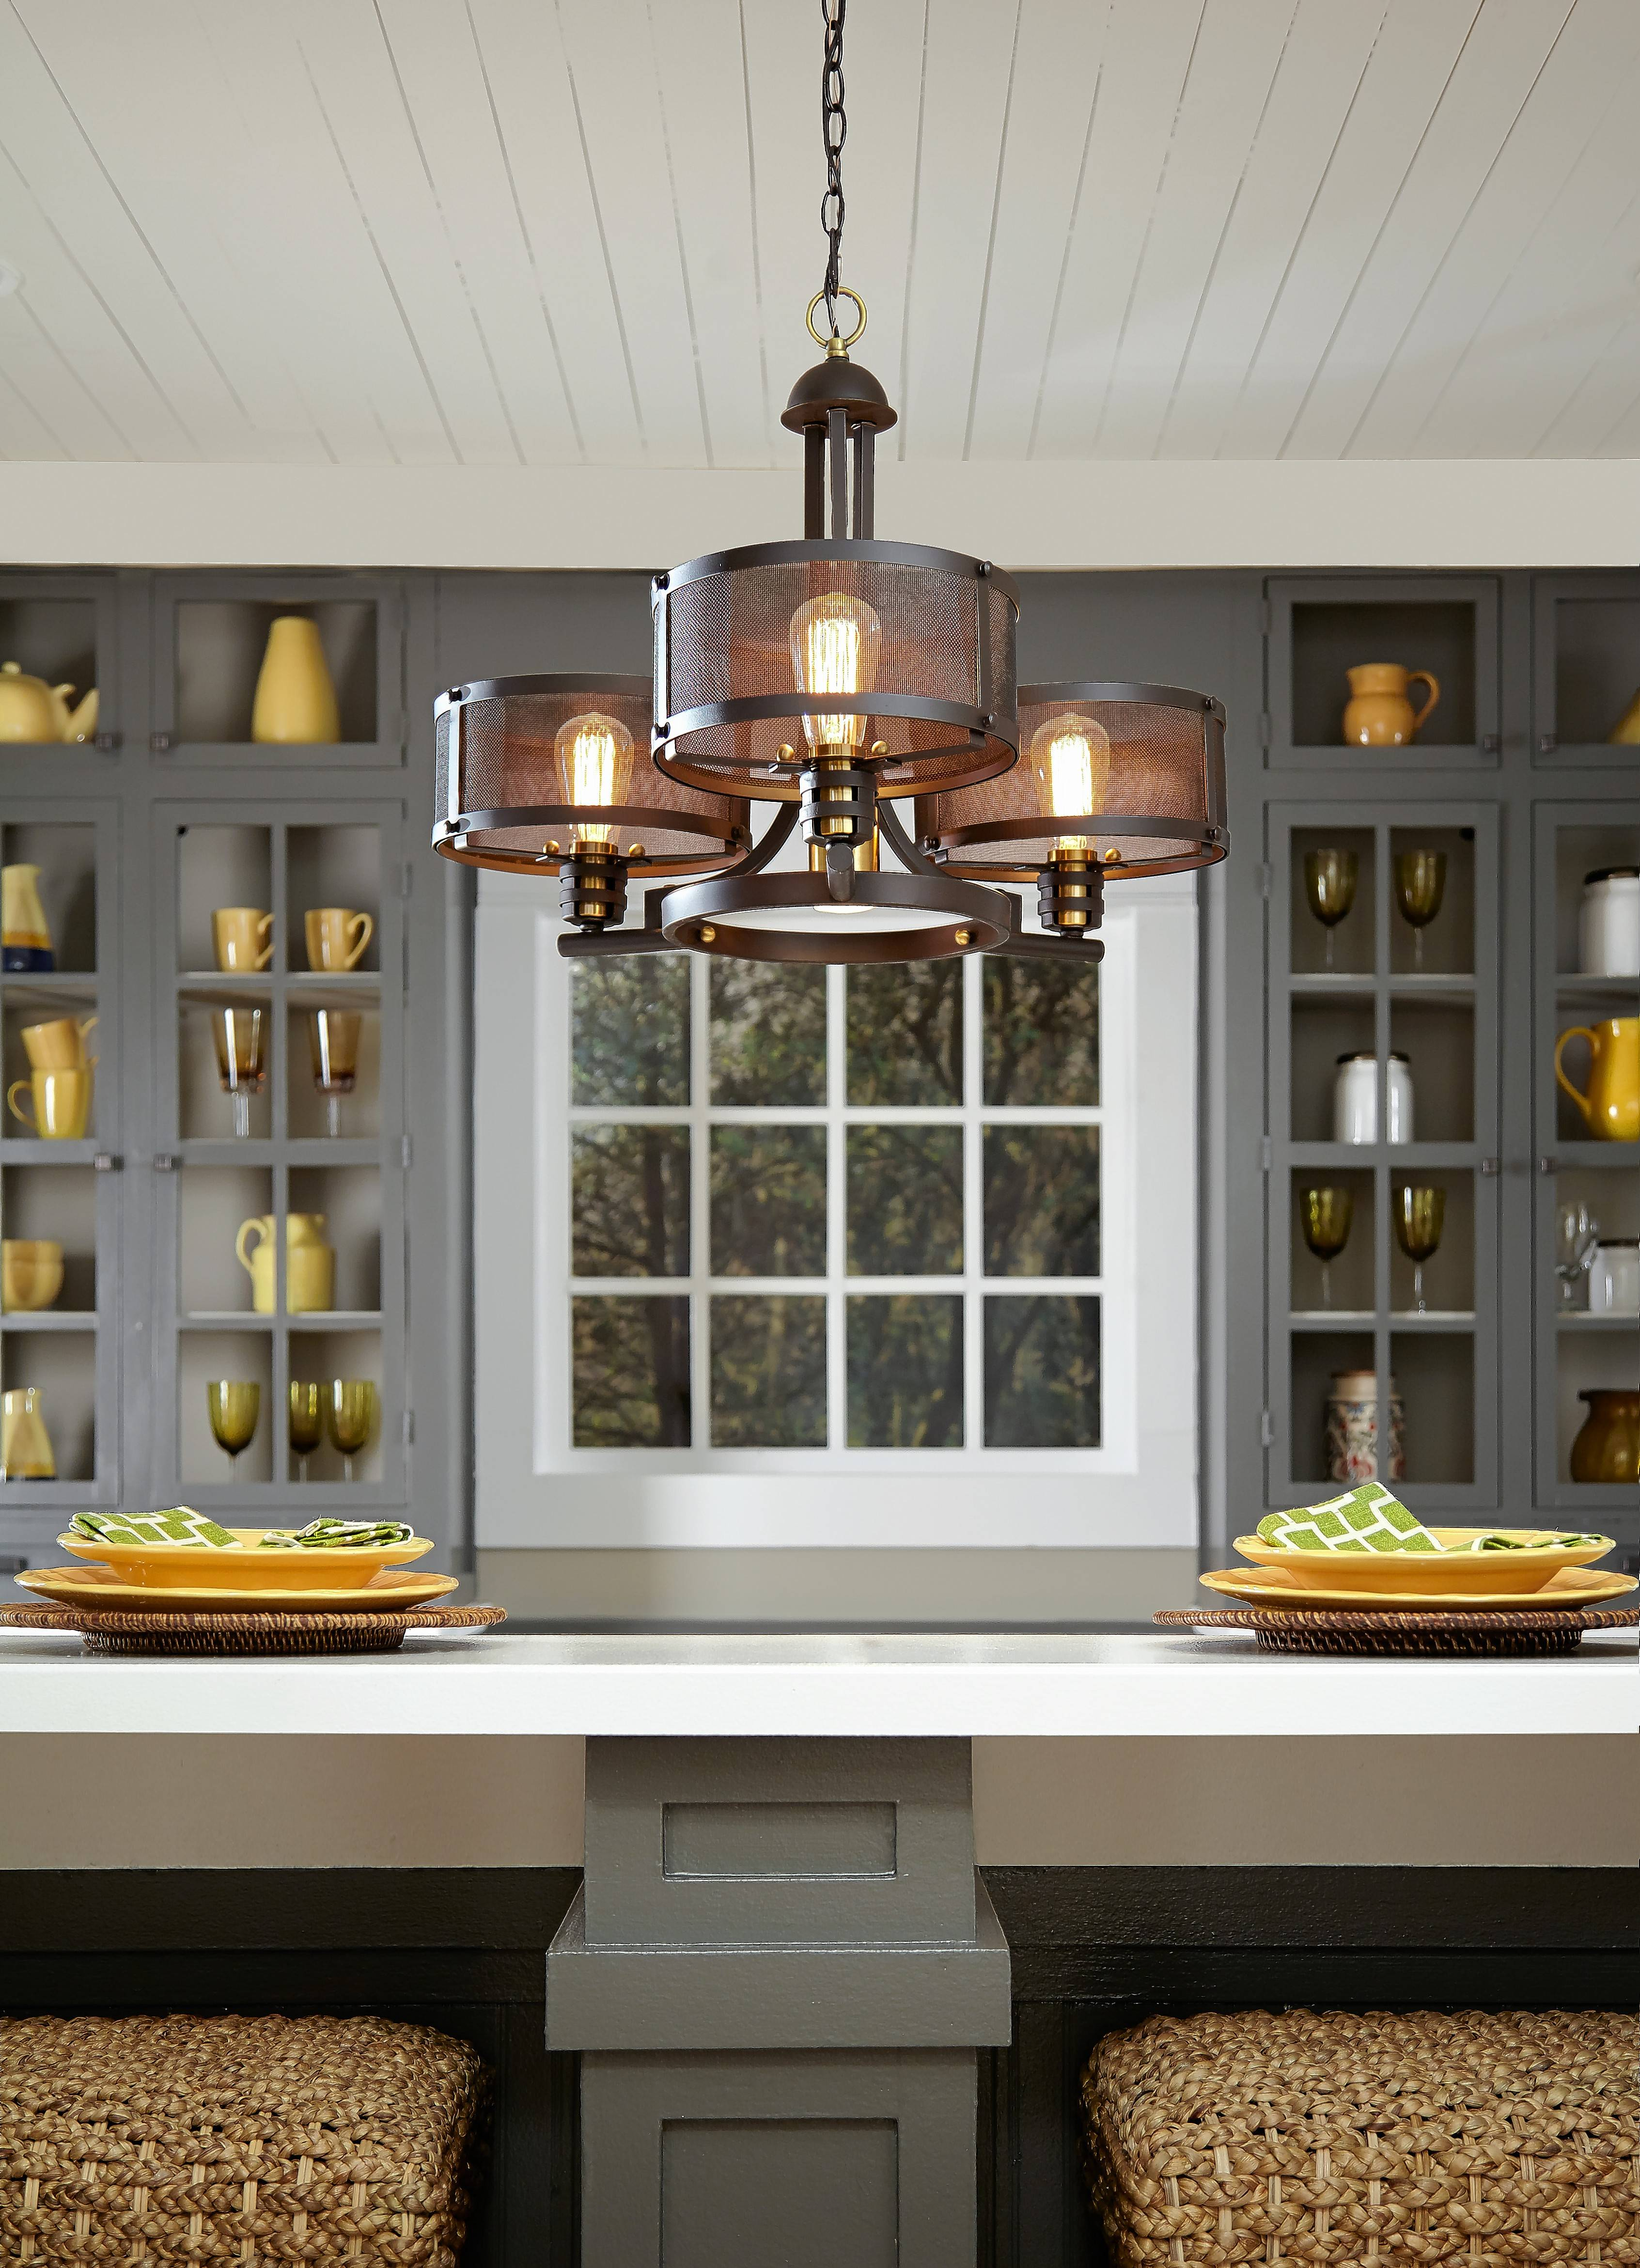 lighting trend. A Popular Choice Today In Light Fixtures Is Softer Gold -- Which Designers Call Lighting Trend